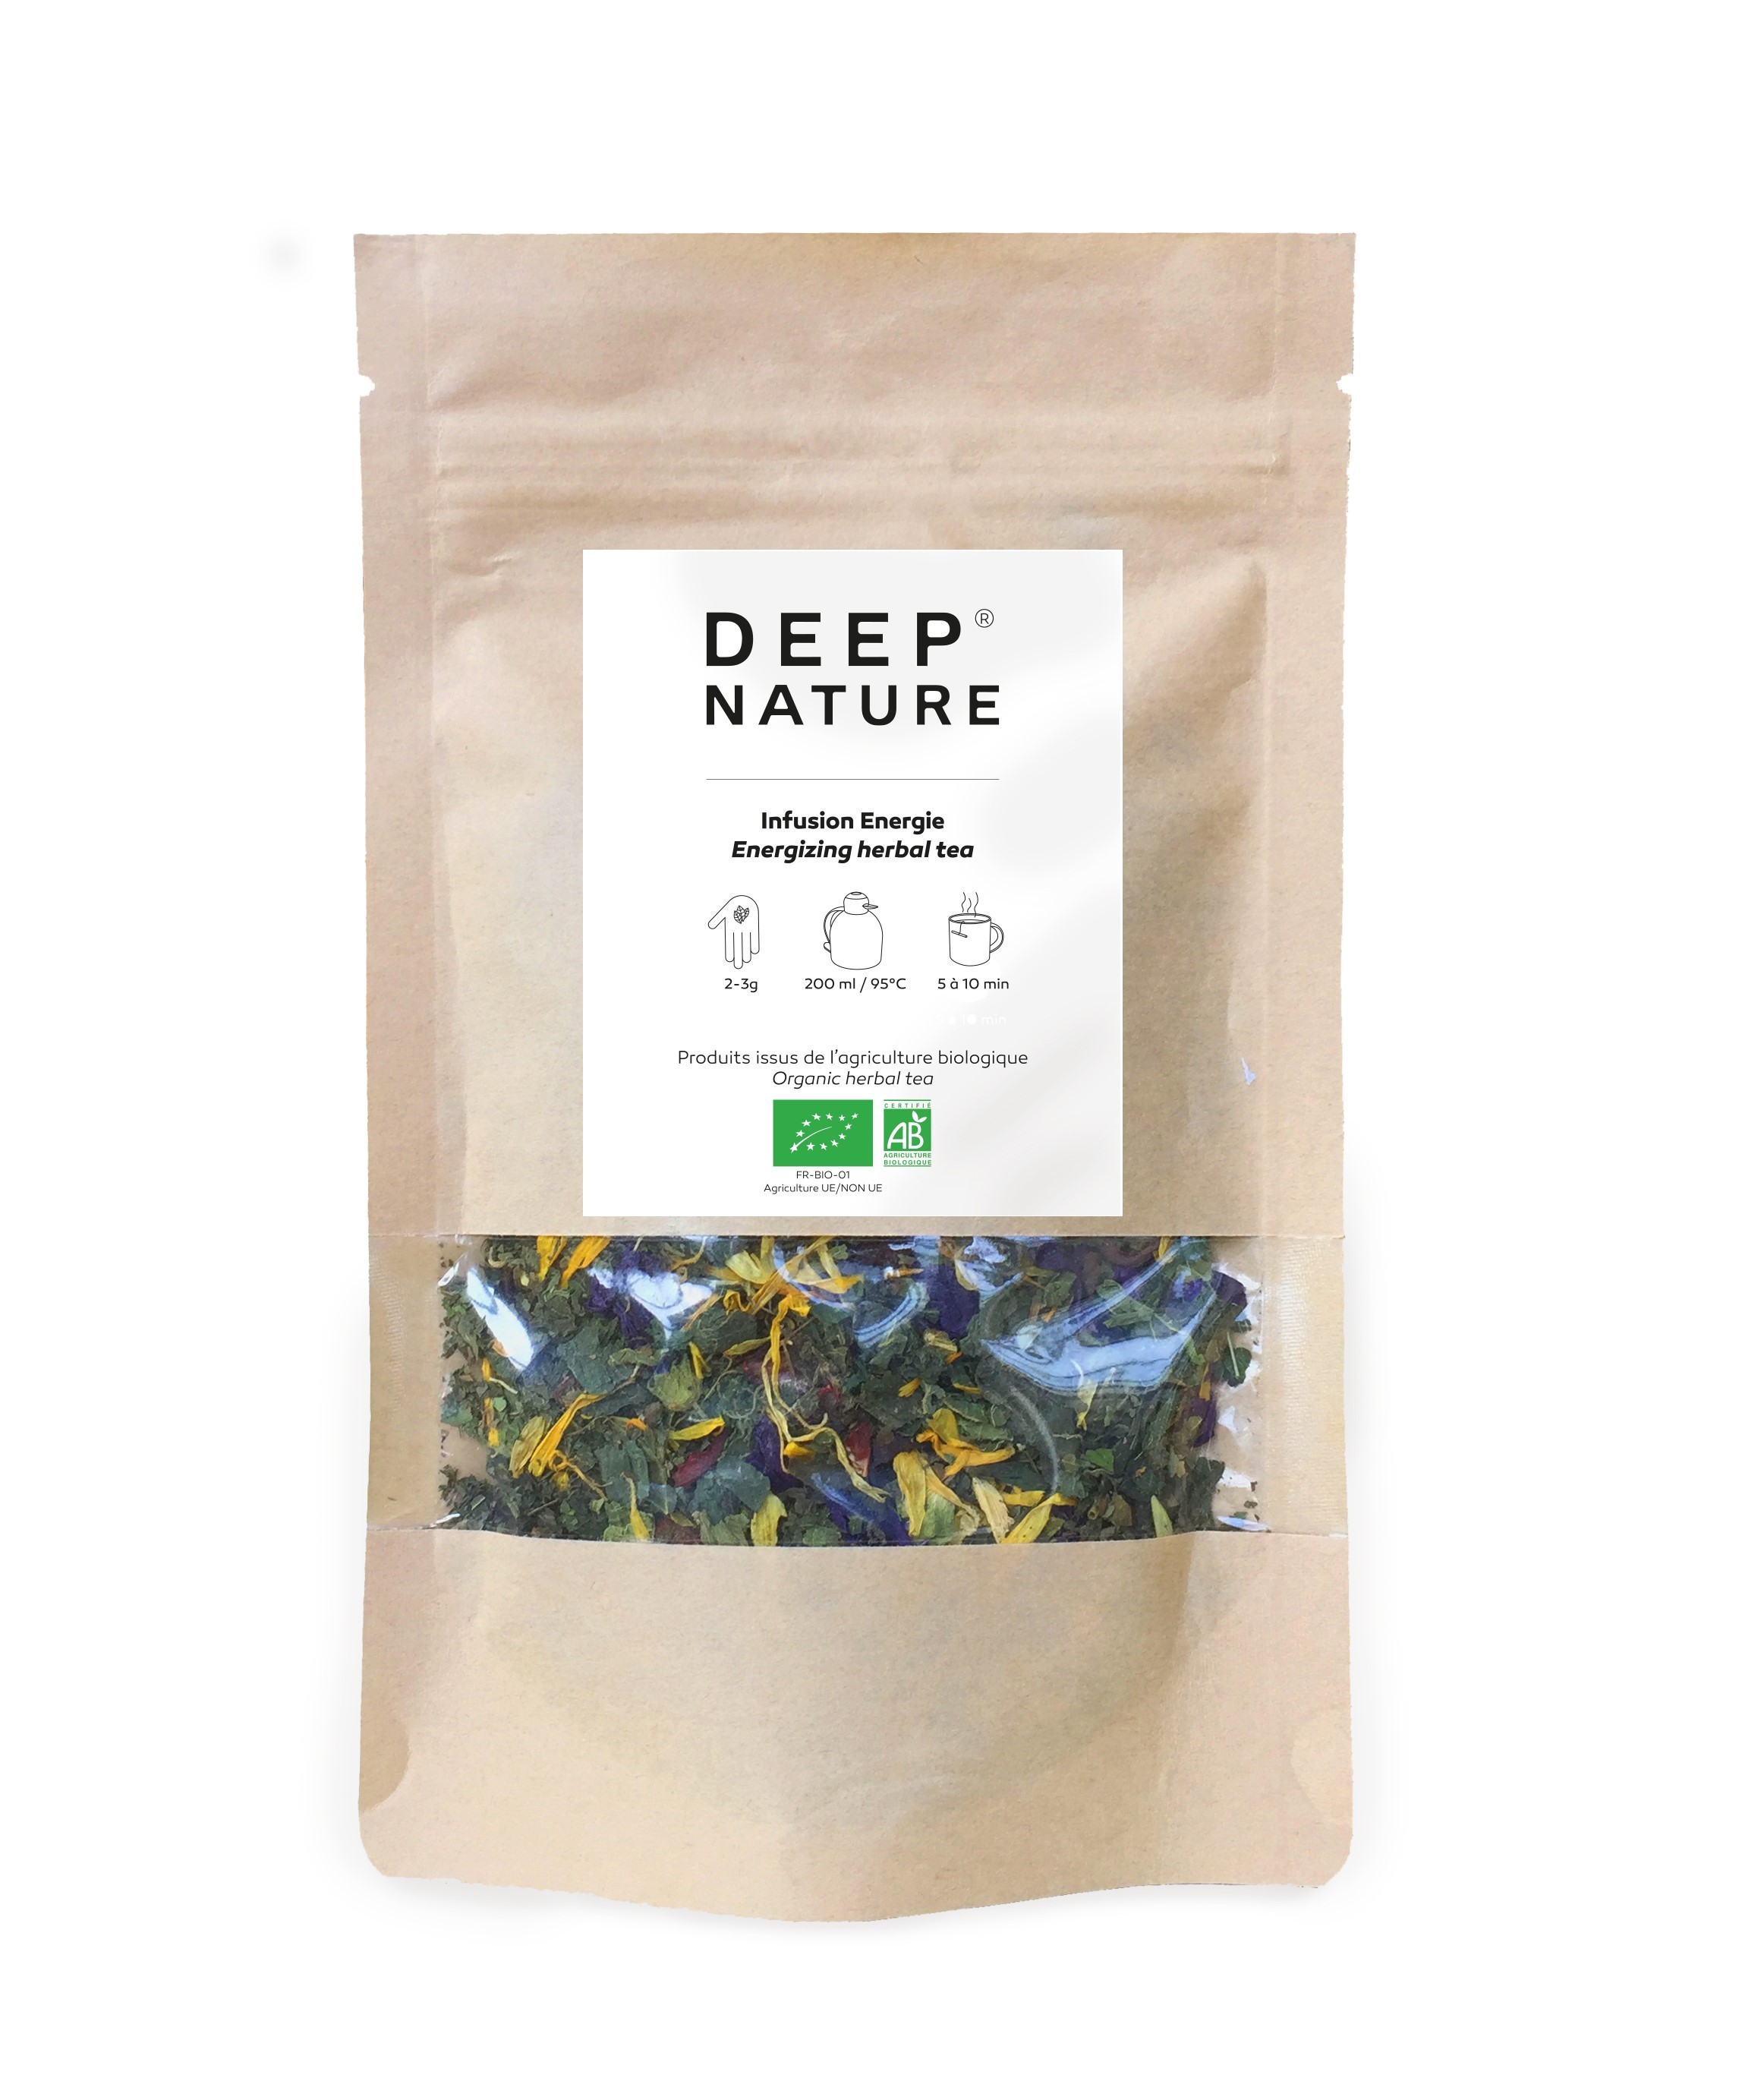 Deep Nature Energising herbal tea